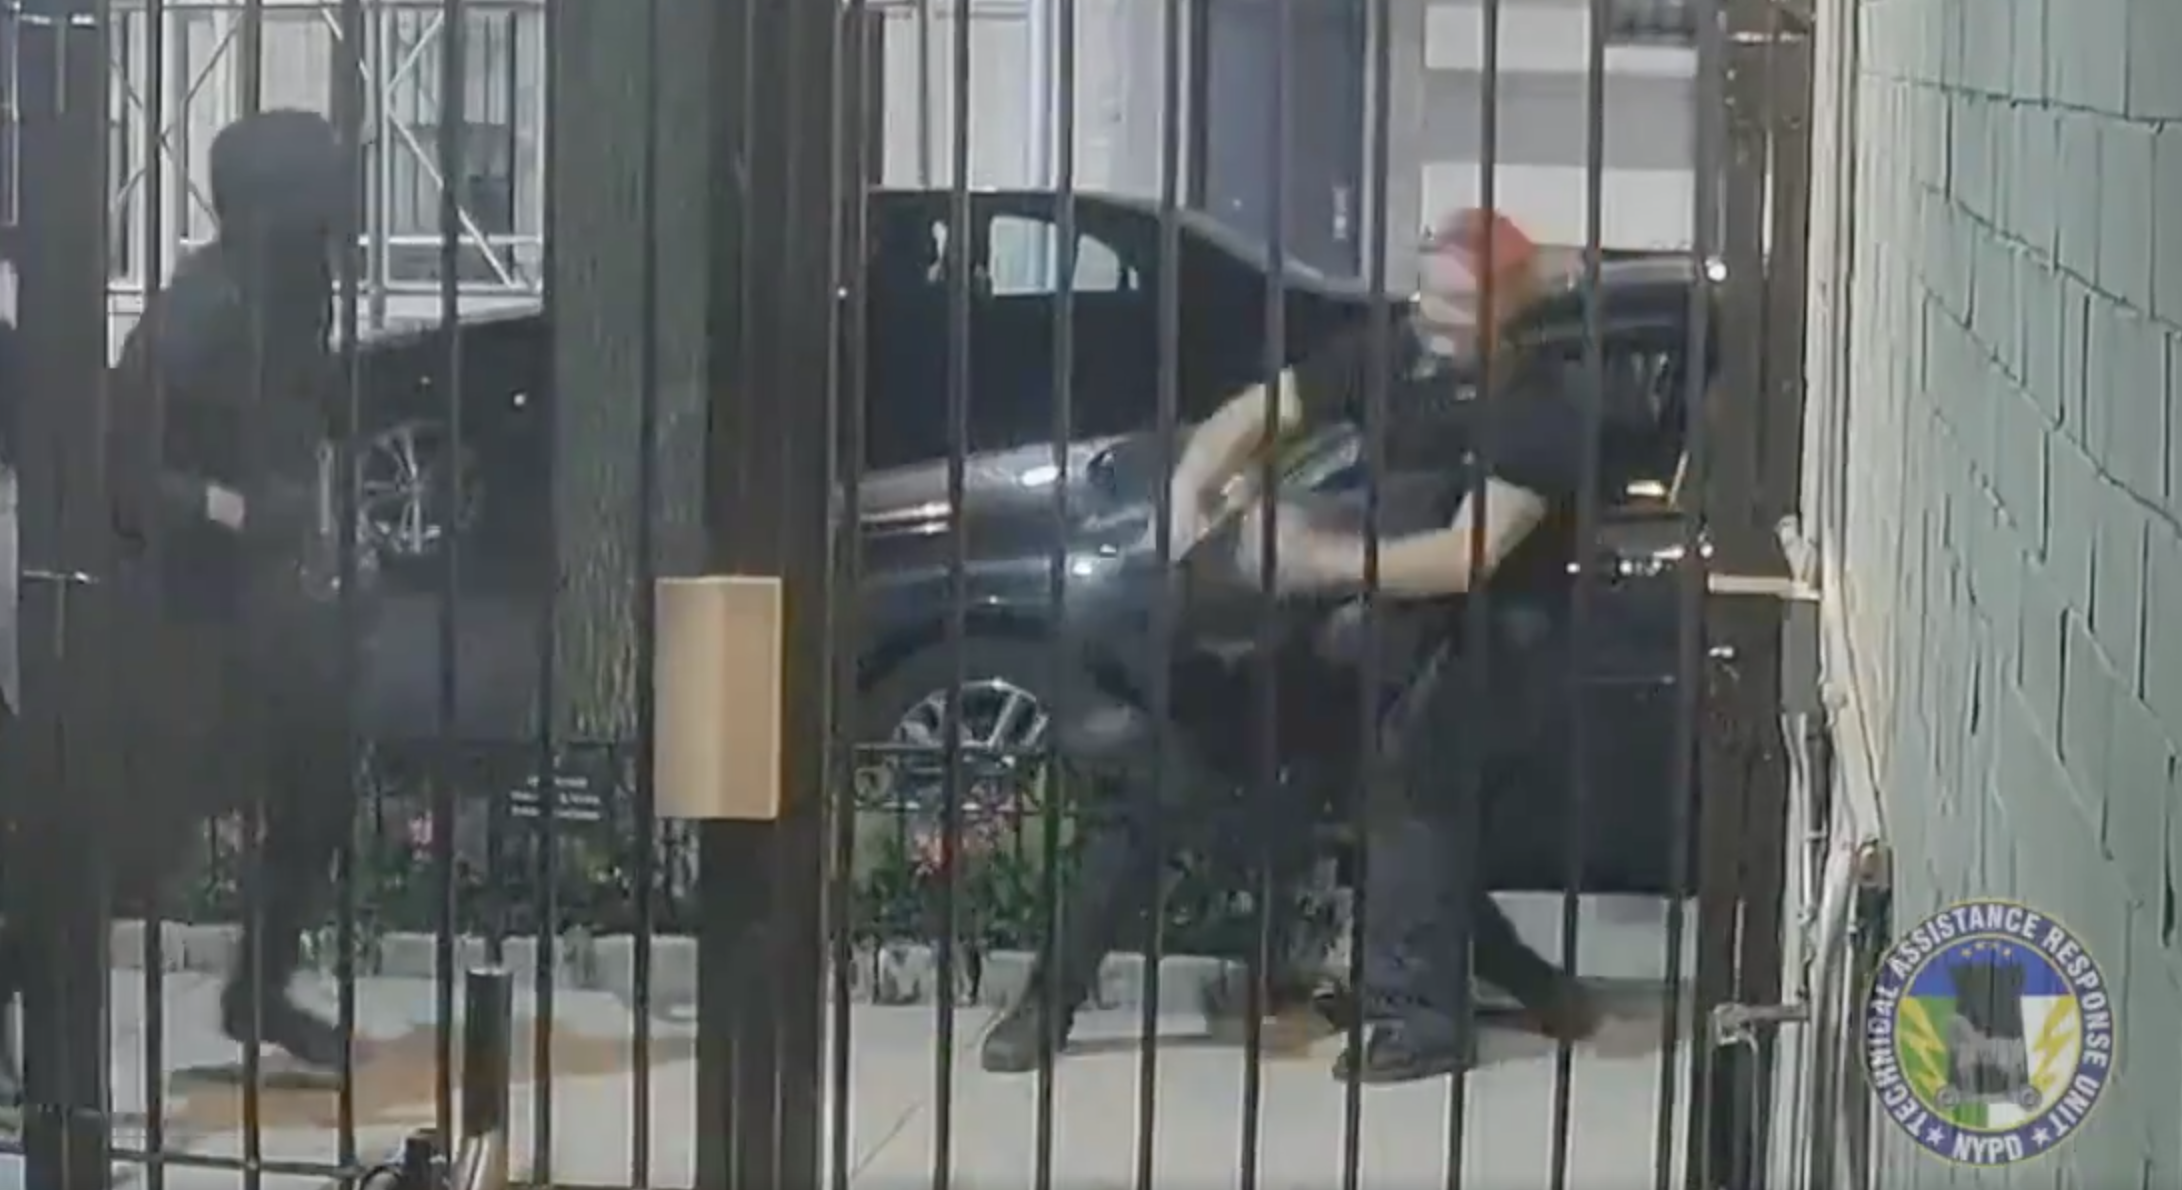 Surveillance footage captured the attack by the far-right Proud Boys, including Jackson Heights resident Irvin Antillon. // Image courtesy of NYPD